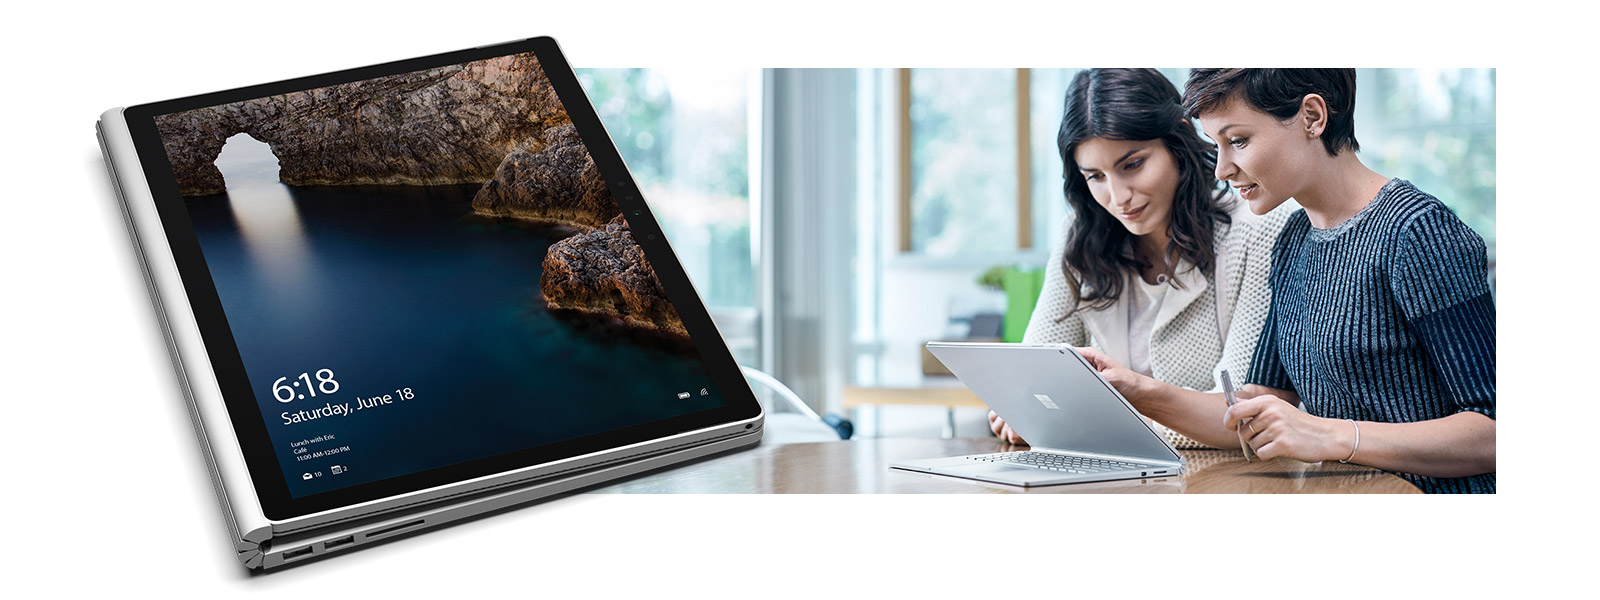 Surface Book in draw mode next to an image of two women working on a Surface Book on a desk